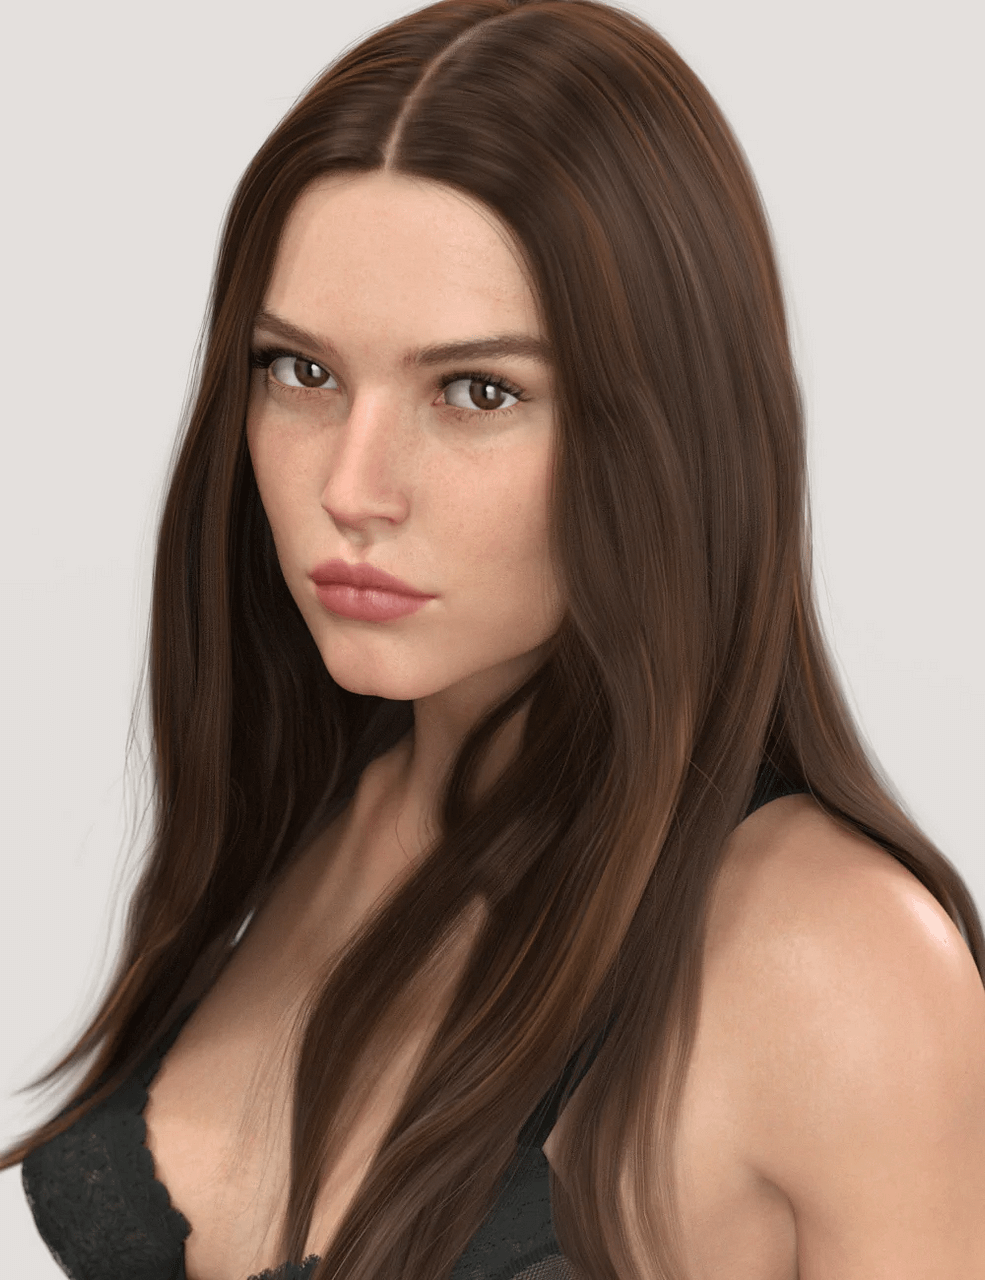 daz jessamy hd for genesis 8